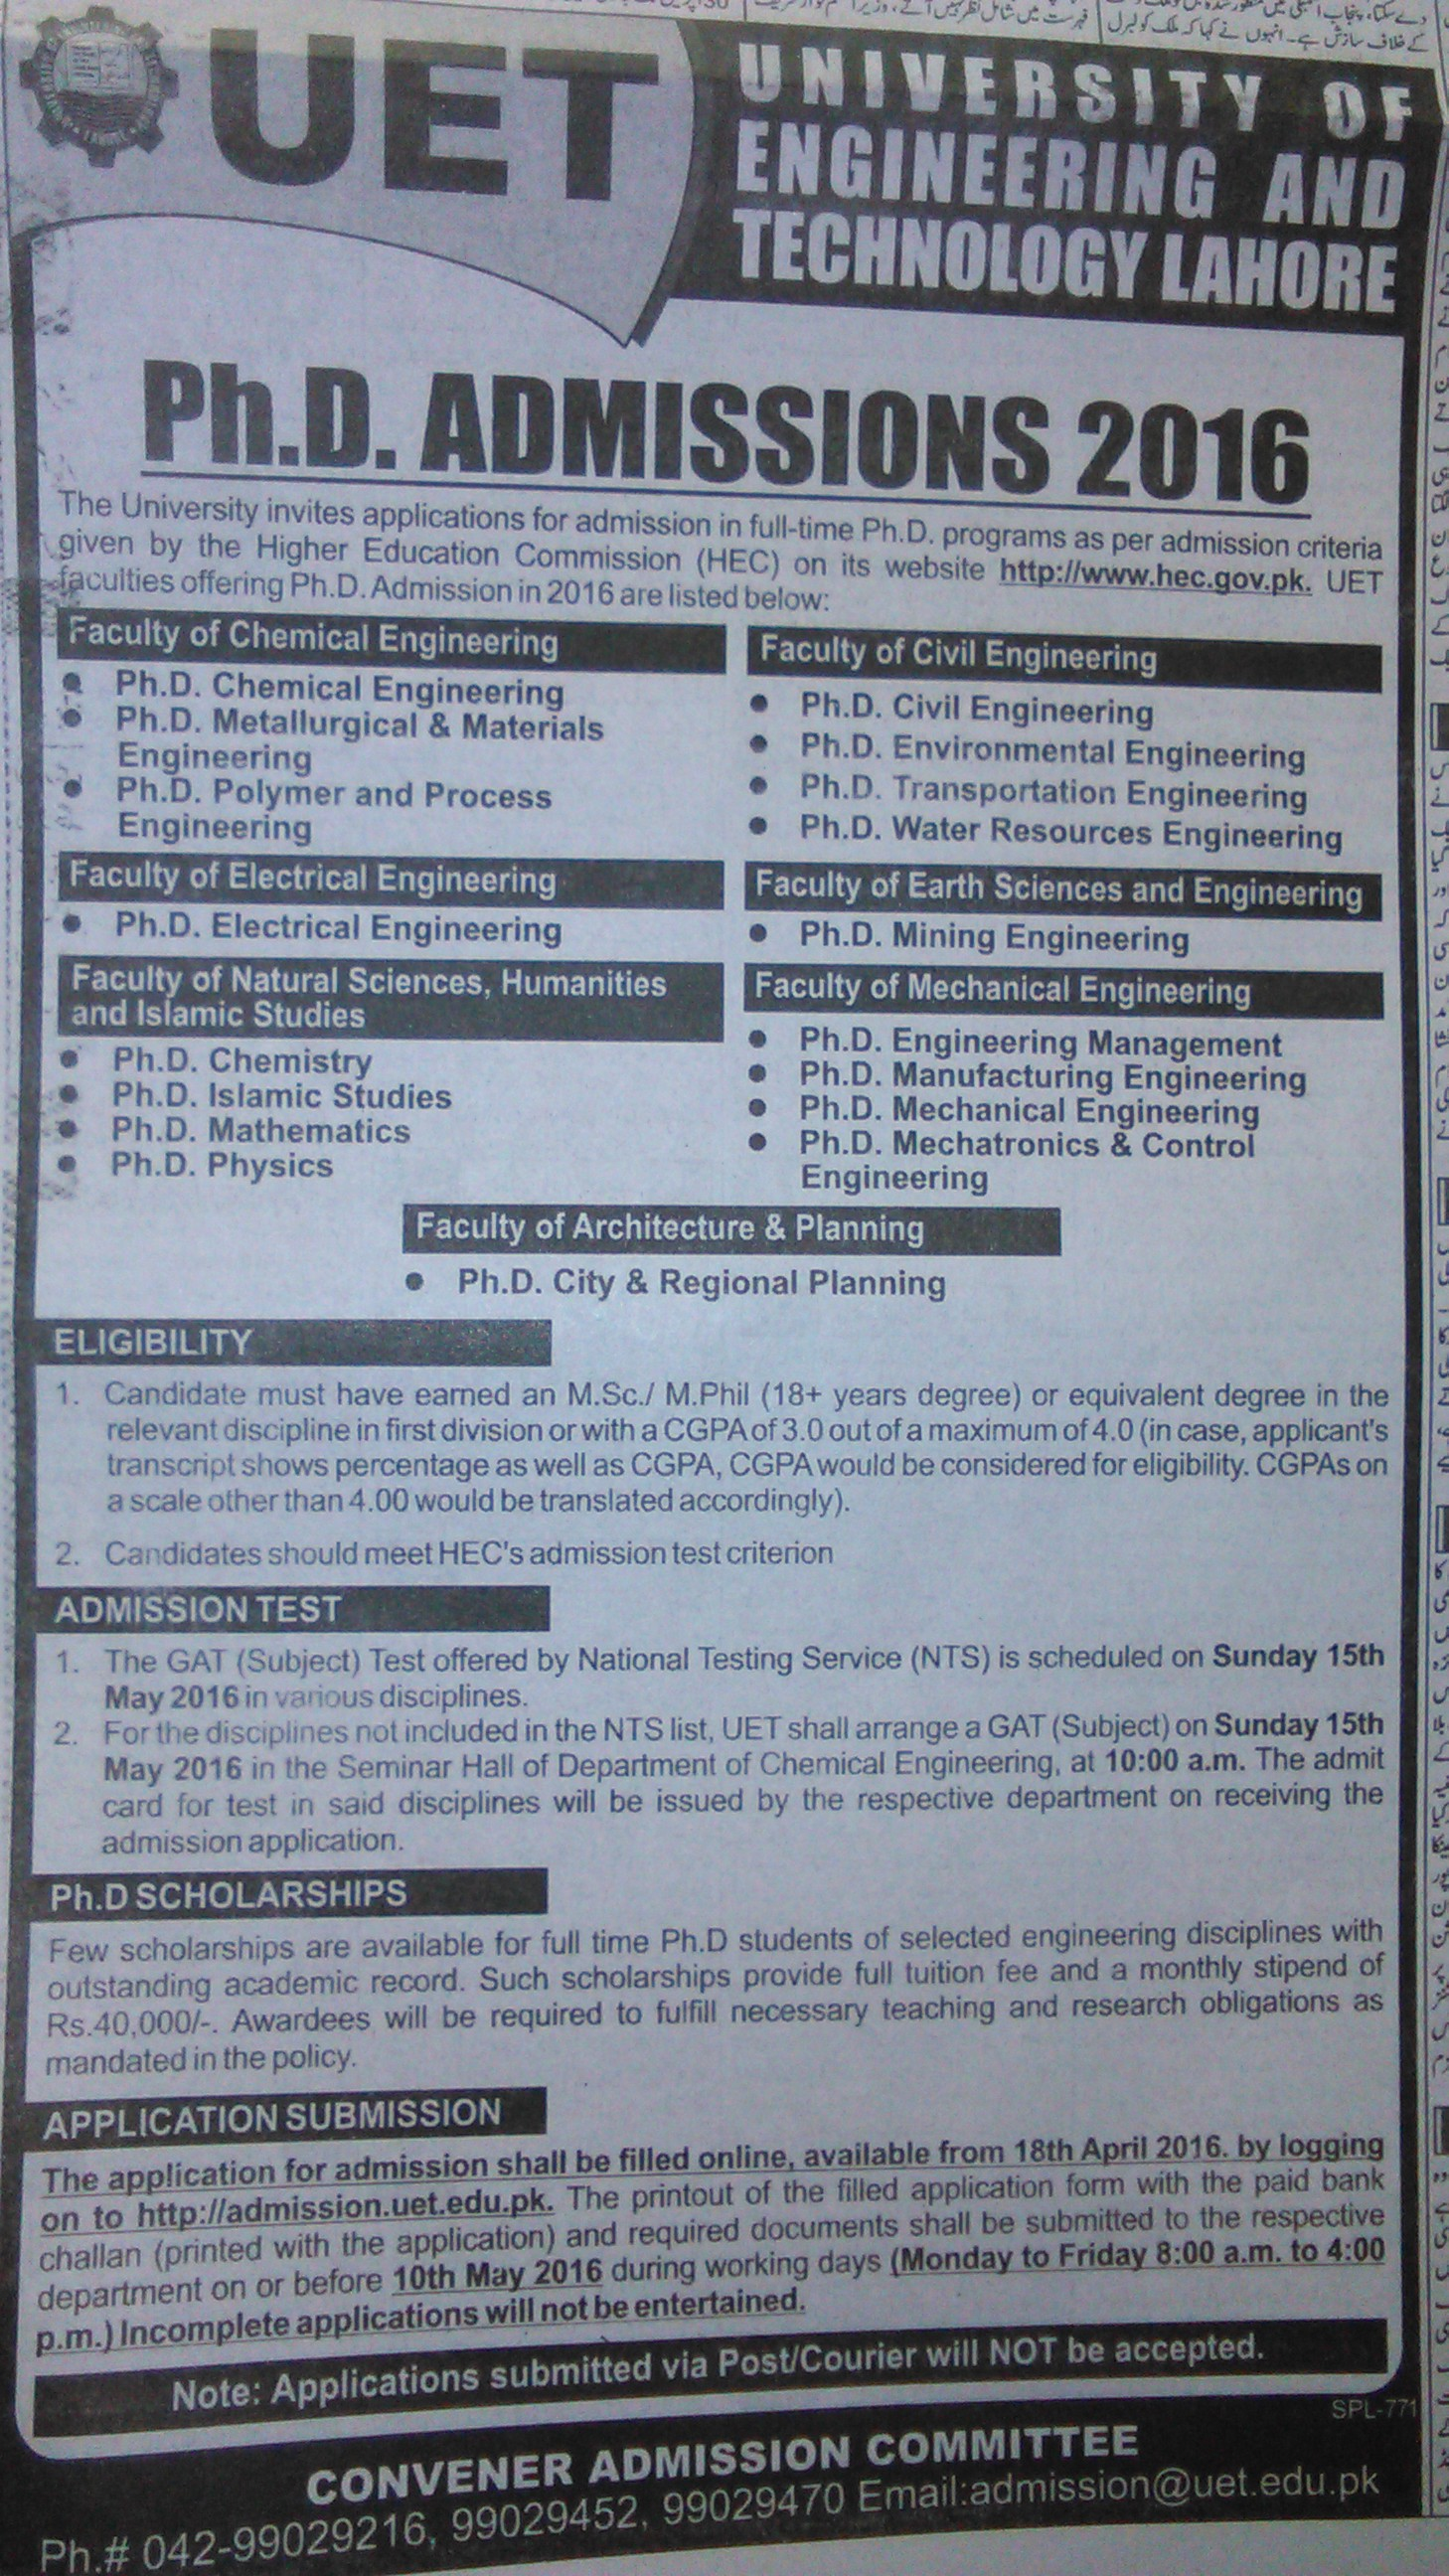 University of Engineering and Technology Admissions 2016